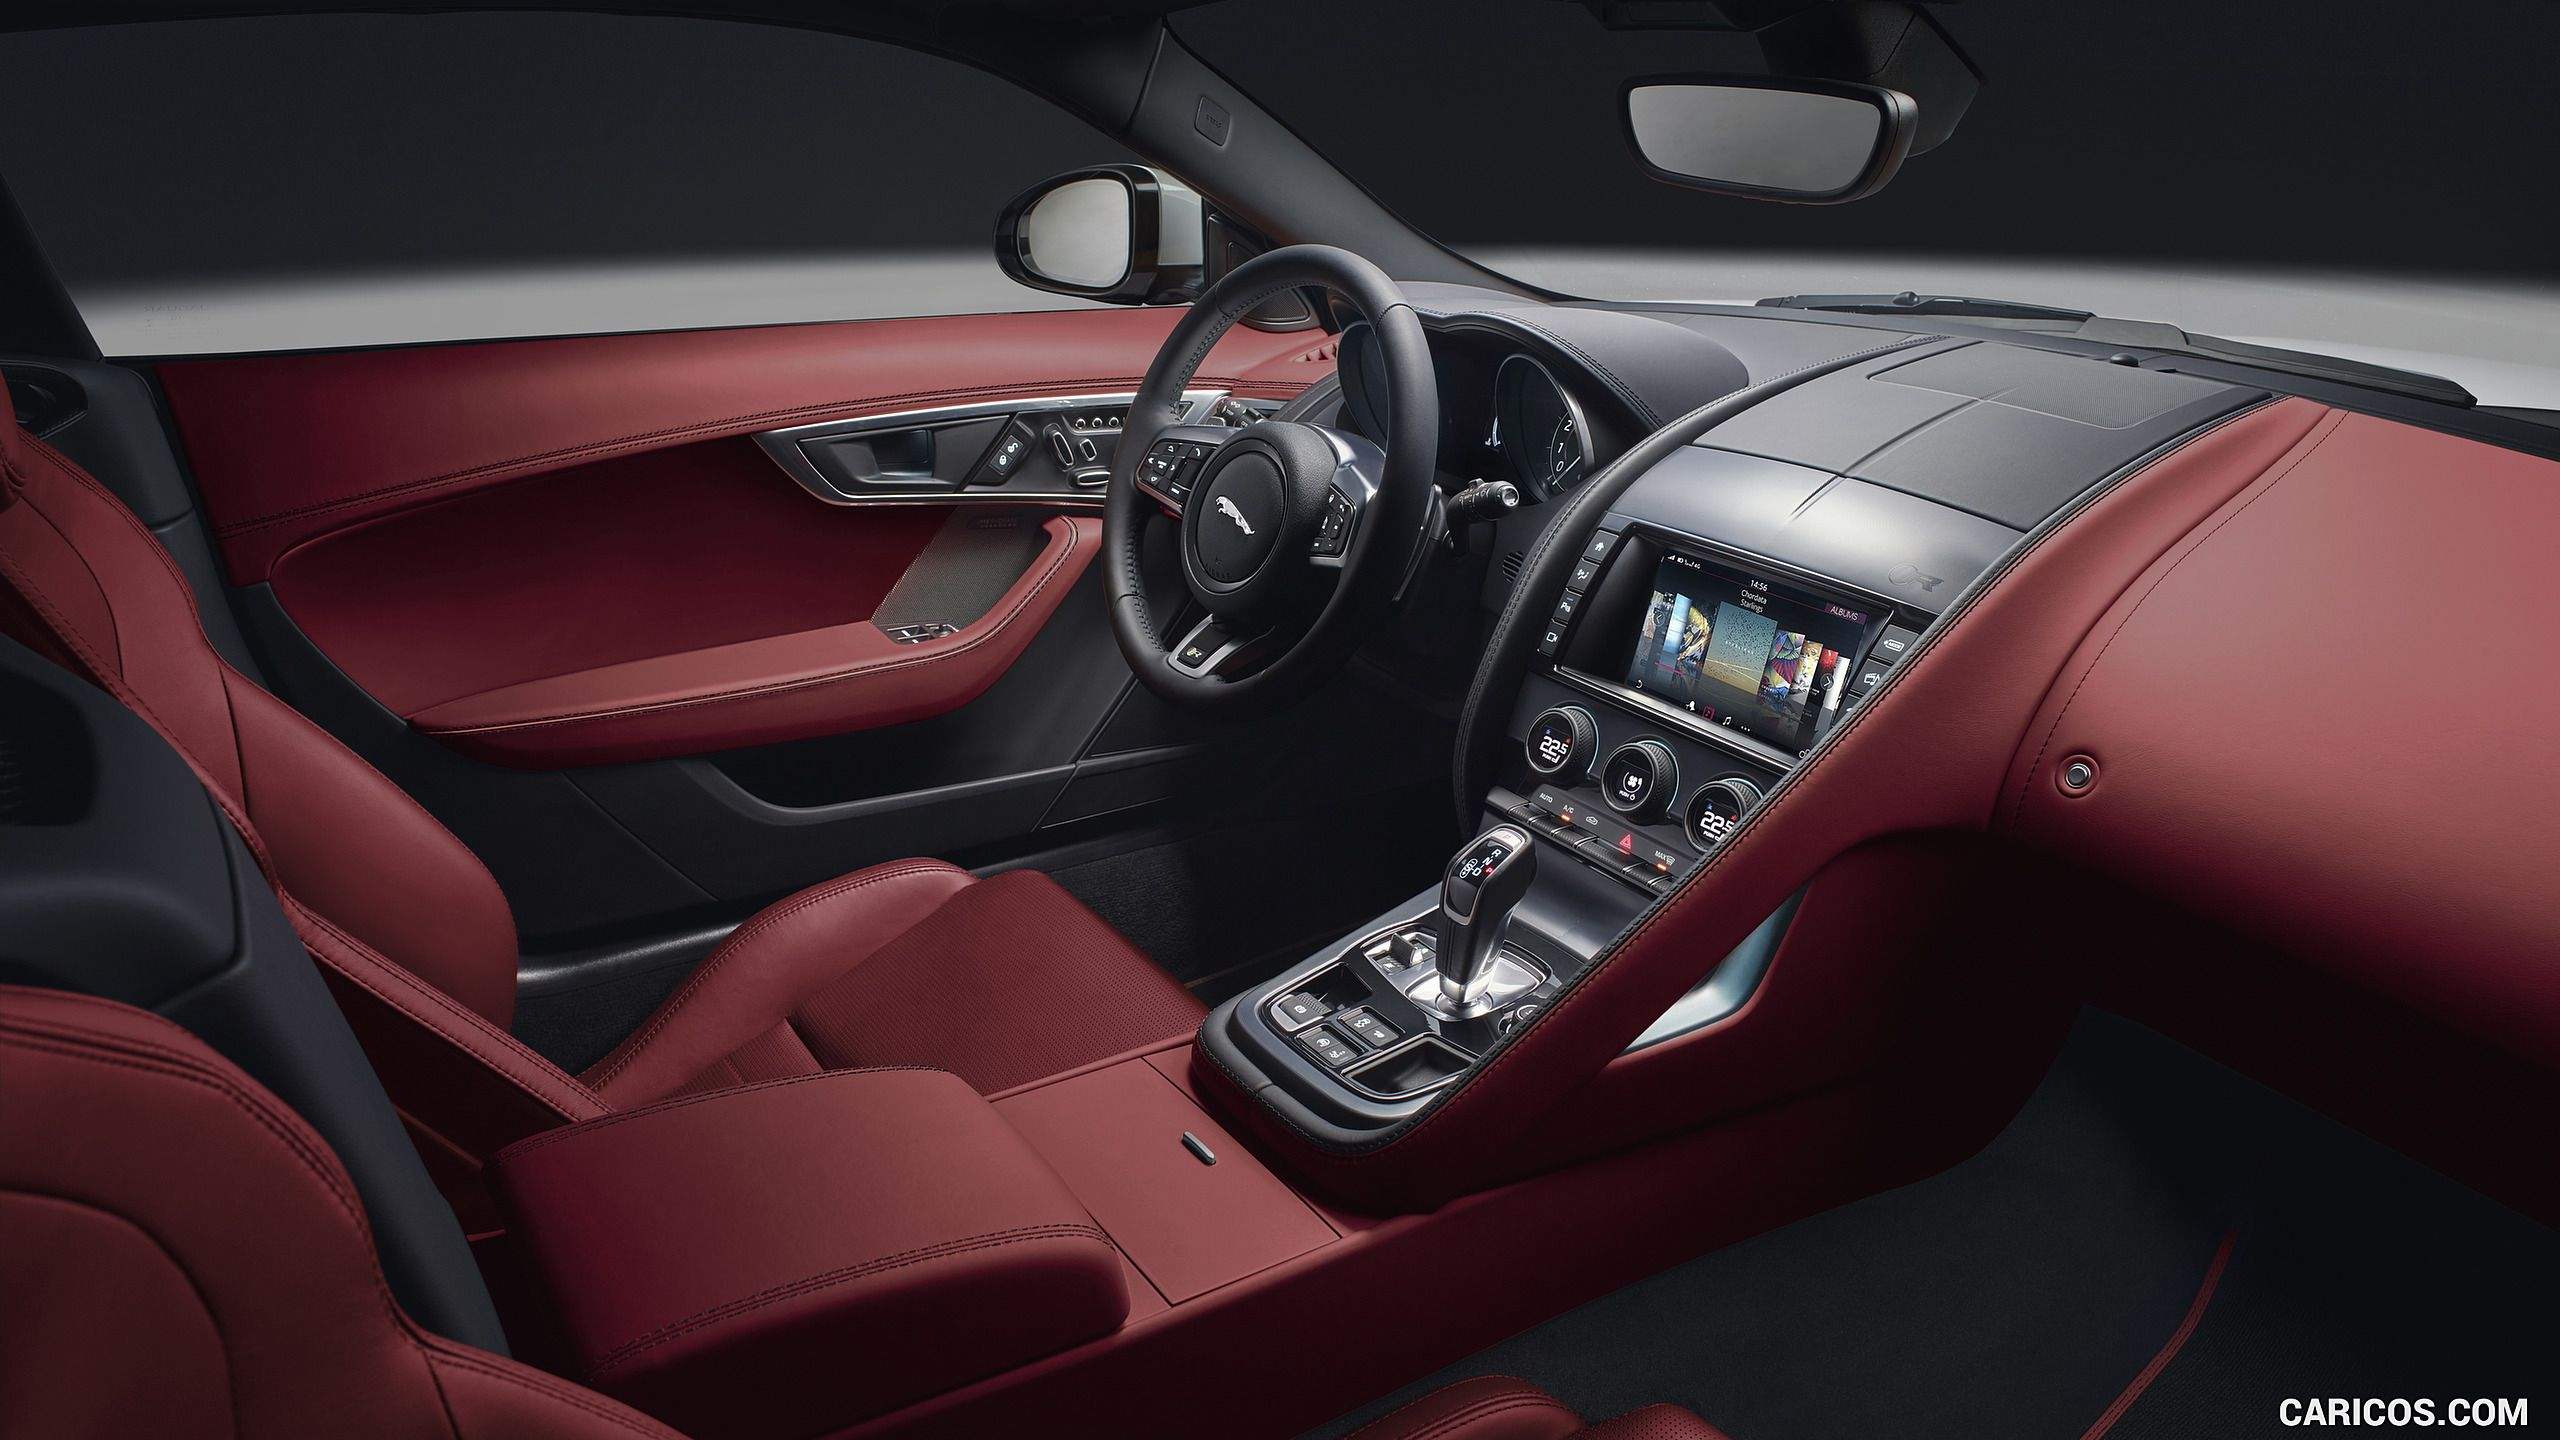 Perfect Jaguar F Type R Coupe Interior And Pics In 2020 Jaguar F Type Jaguar Jaguar Car